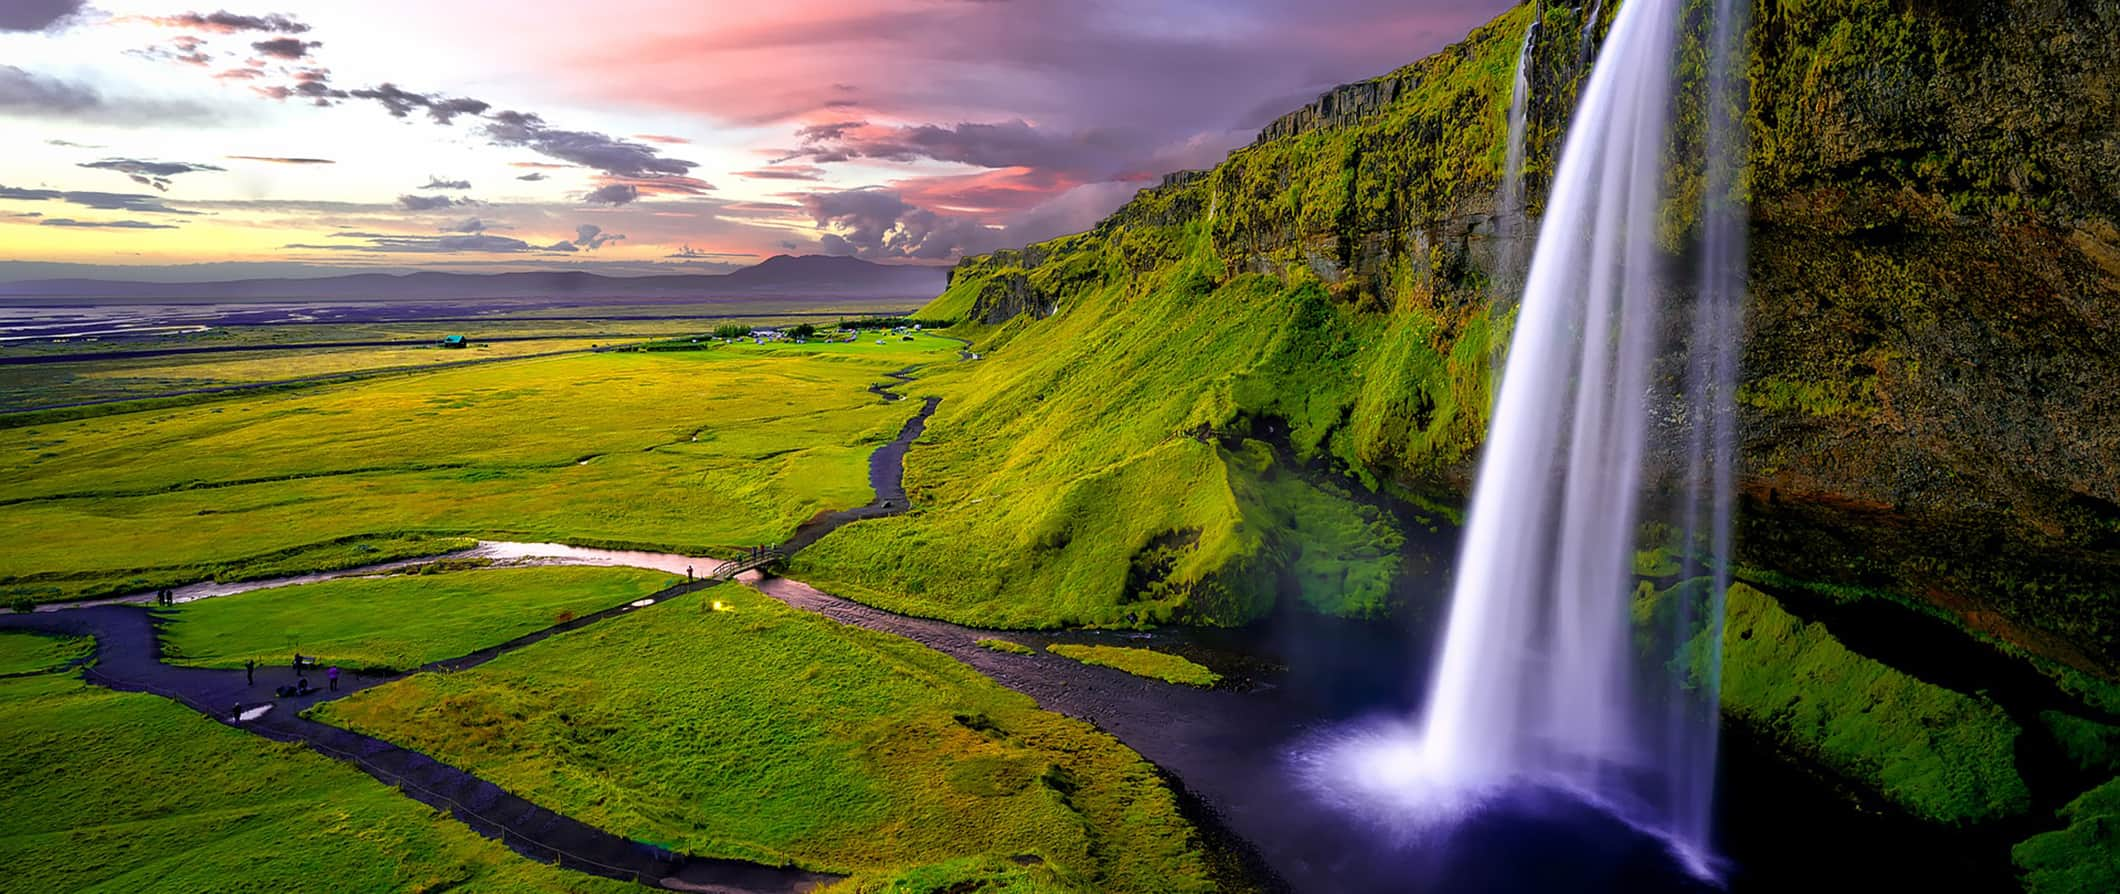 Iceland travel guide what to see do costs ways to save iceland travel guide solutioingenieria Images